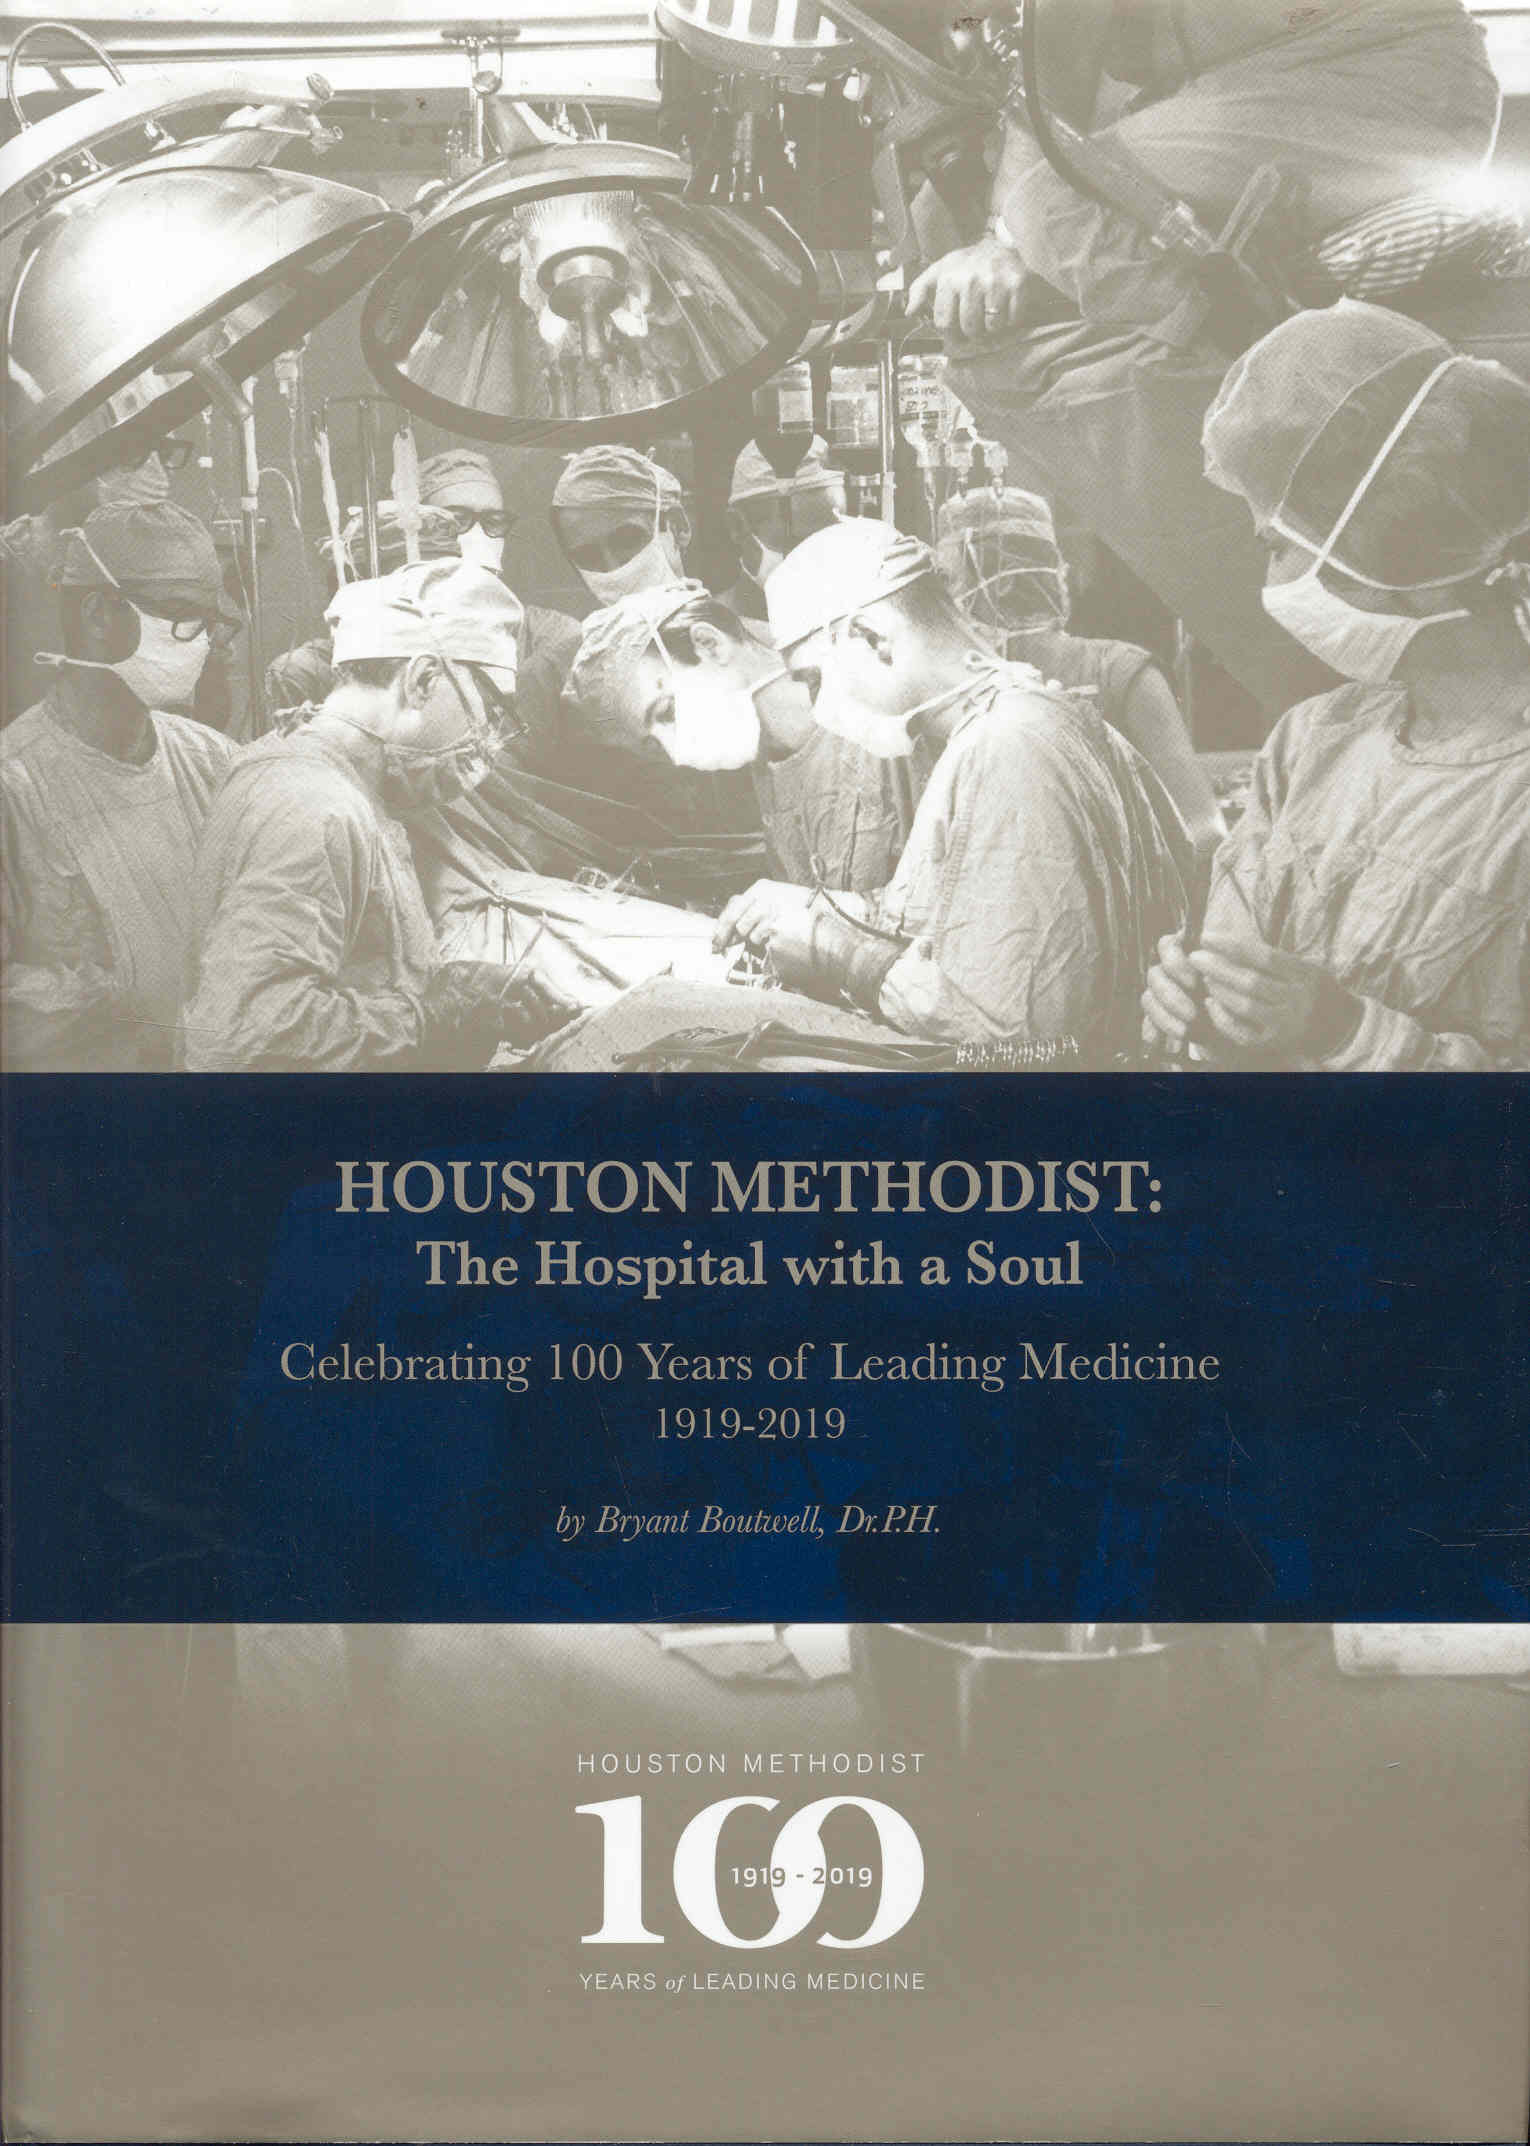 Image for Houston Methodist: The Hospital with a Soul (Celebrating 100 Years of Leading Medicine)